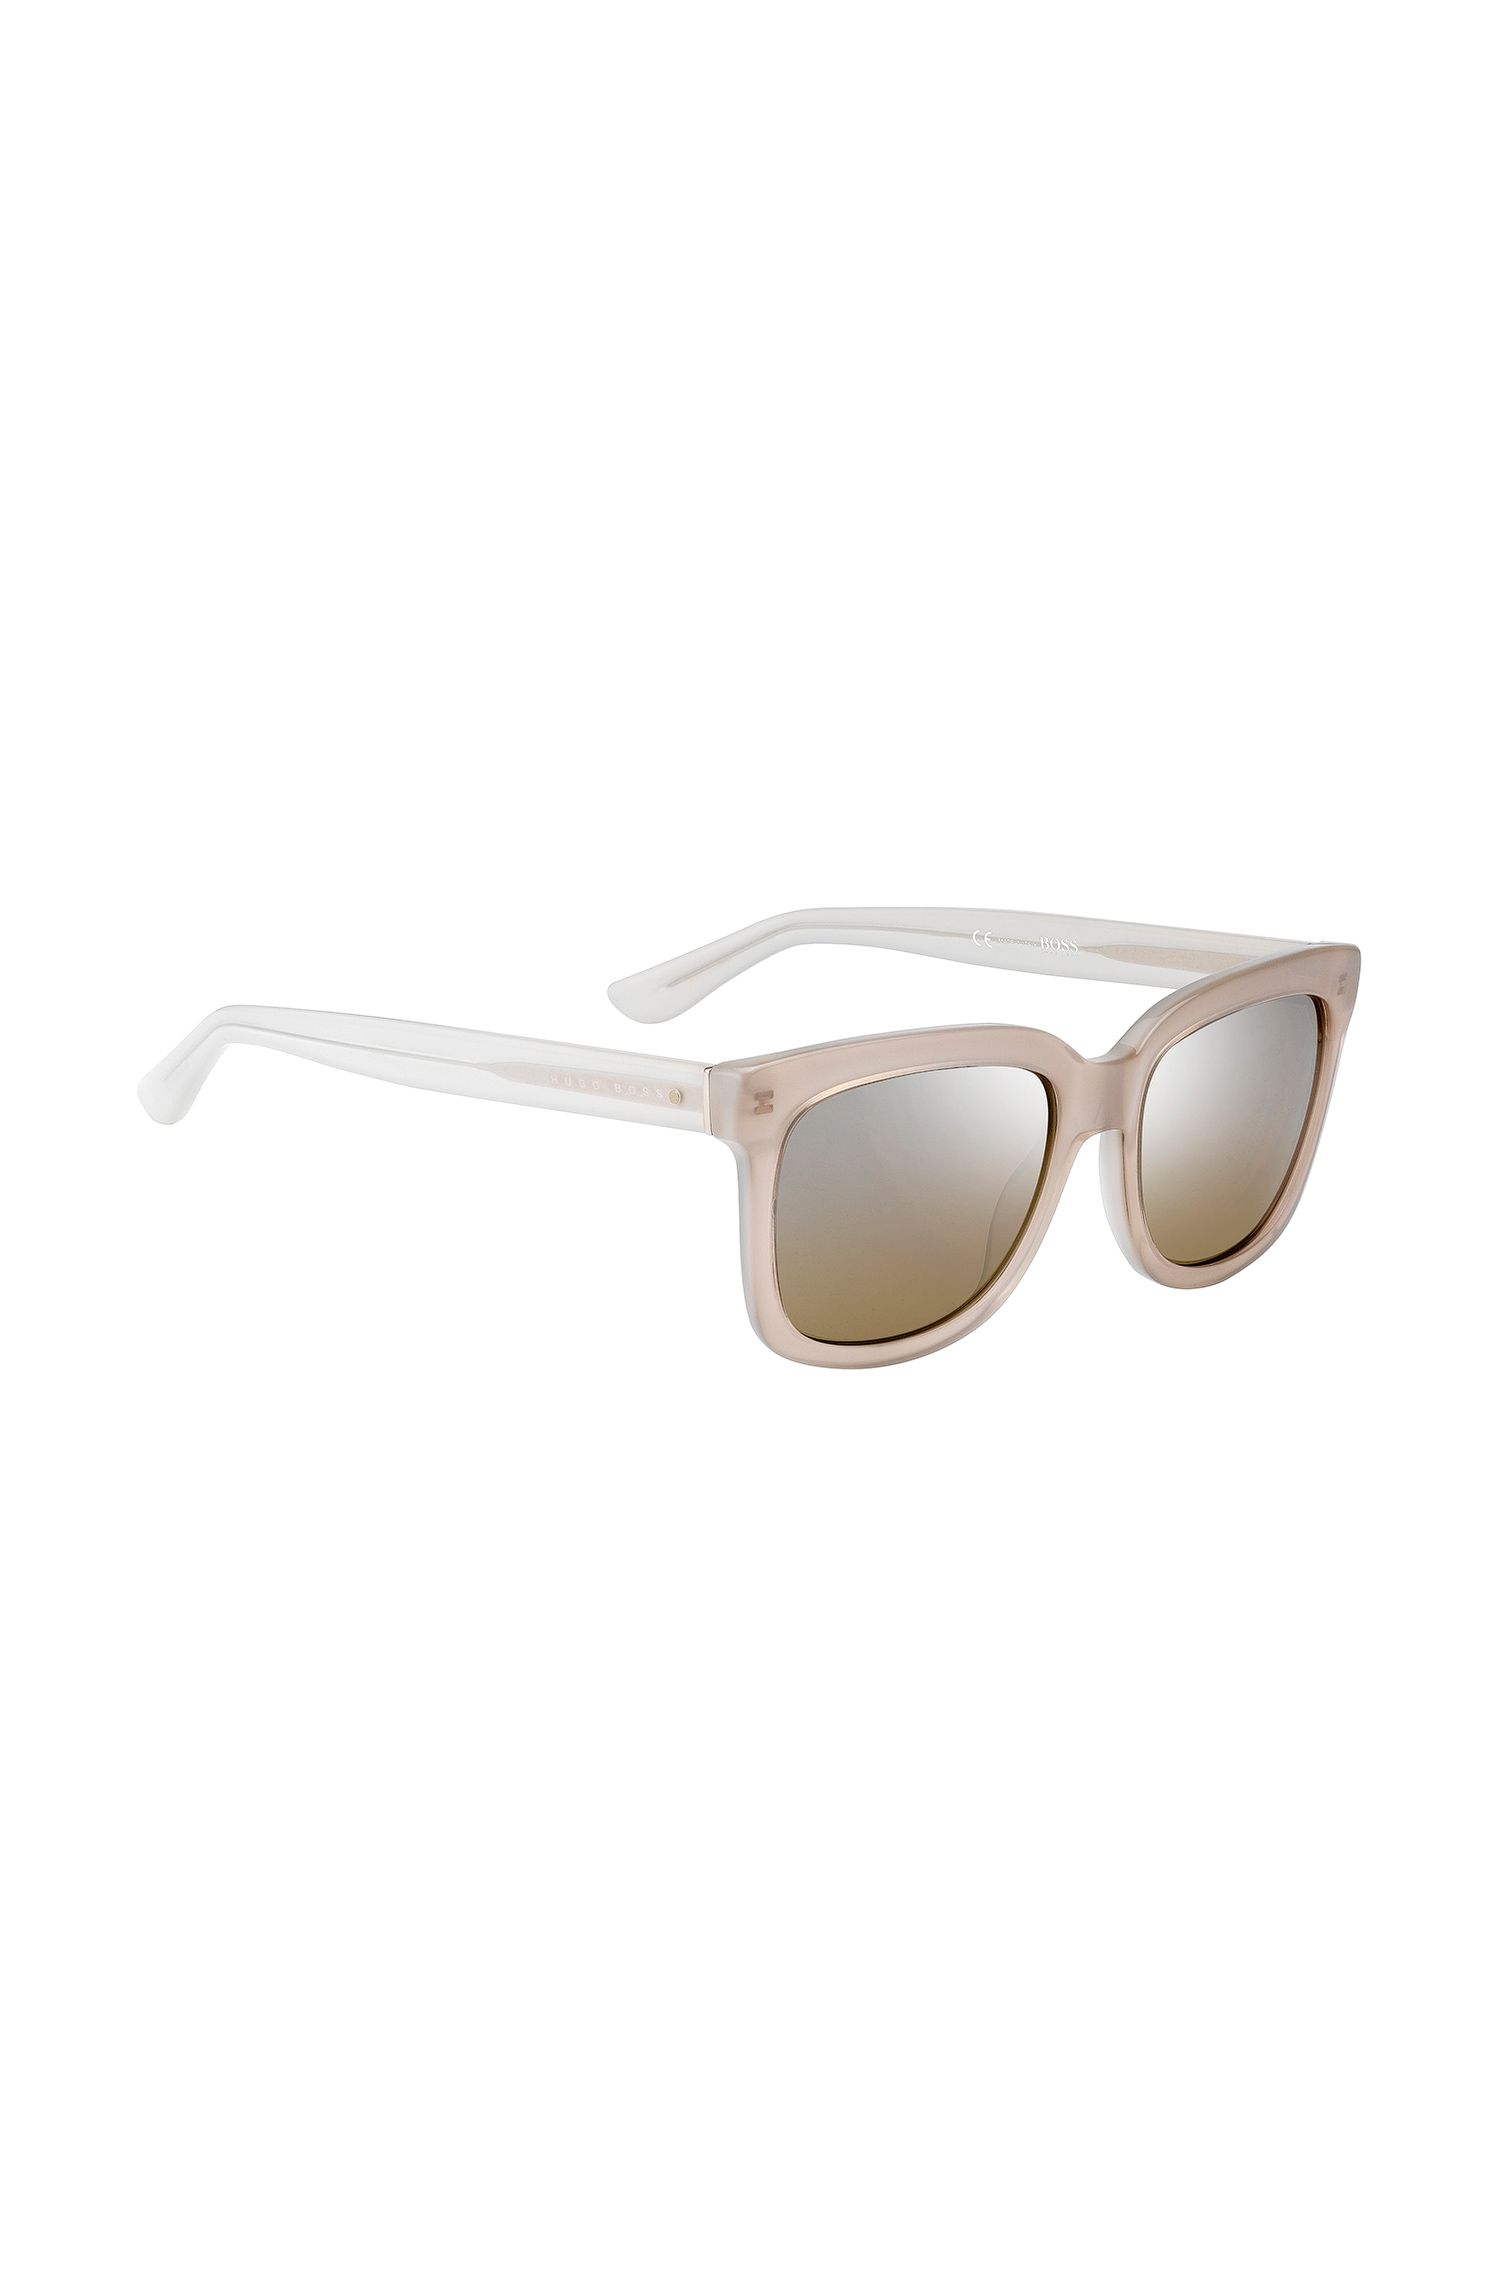 Sunglasses: 'BOSS 0741/S'